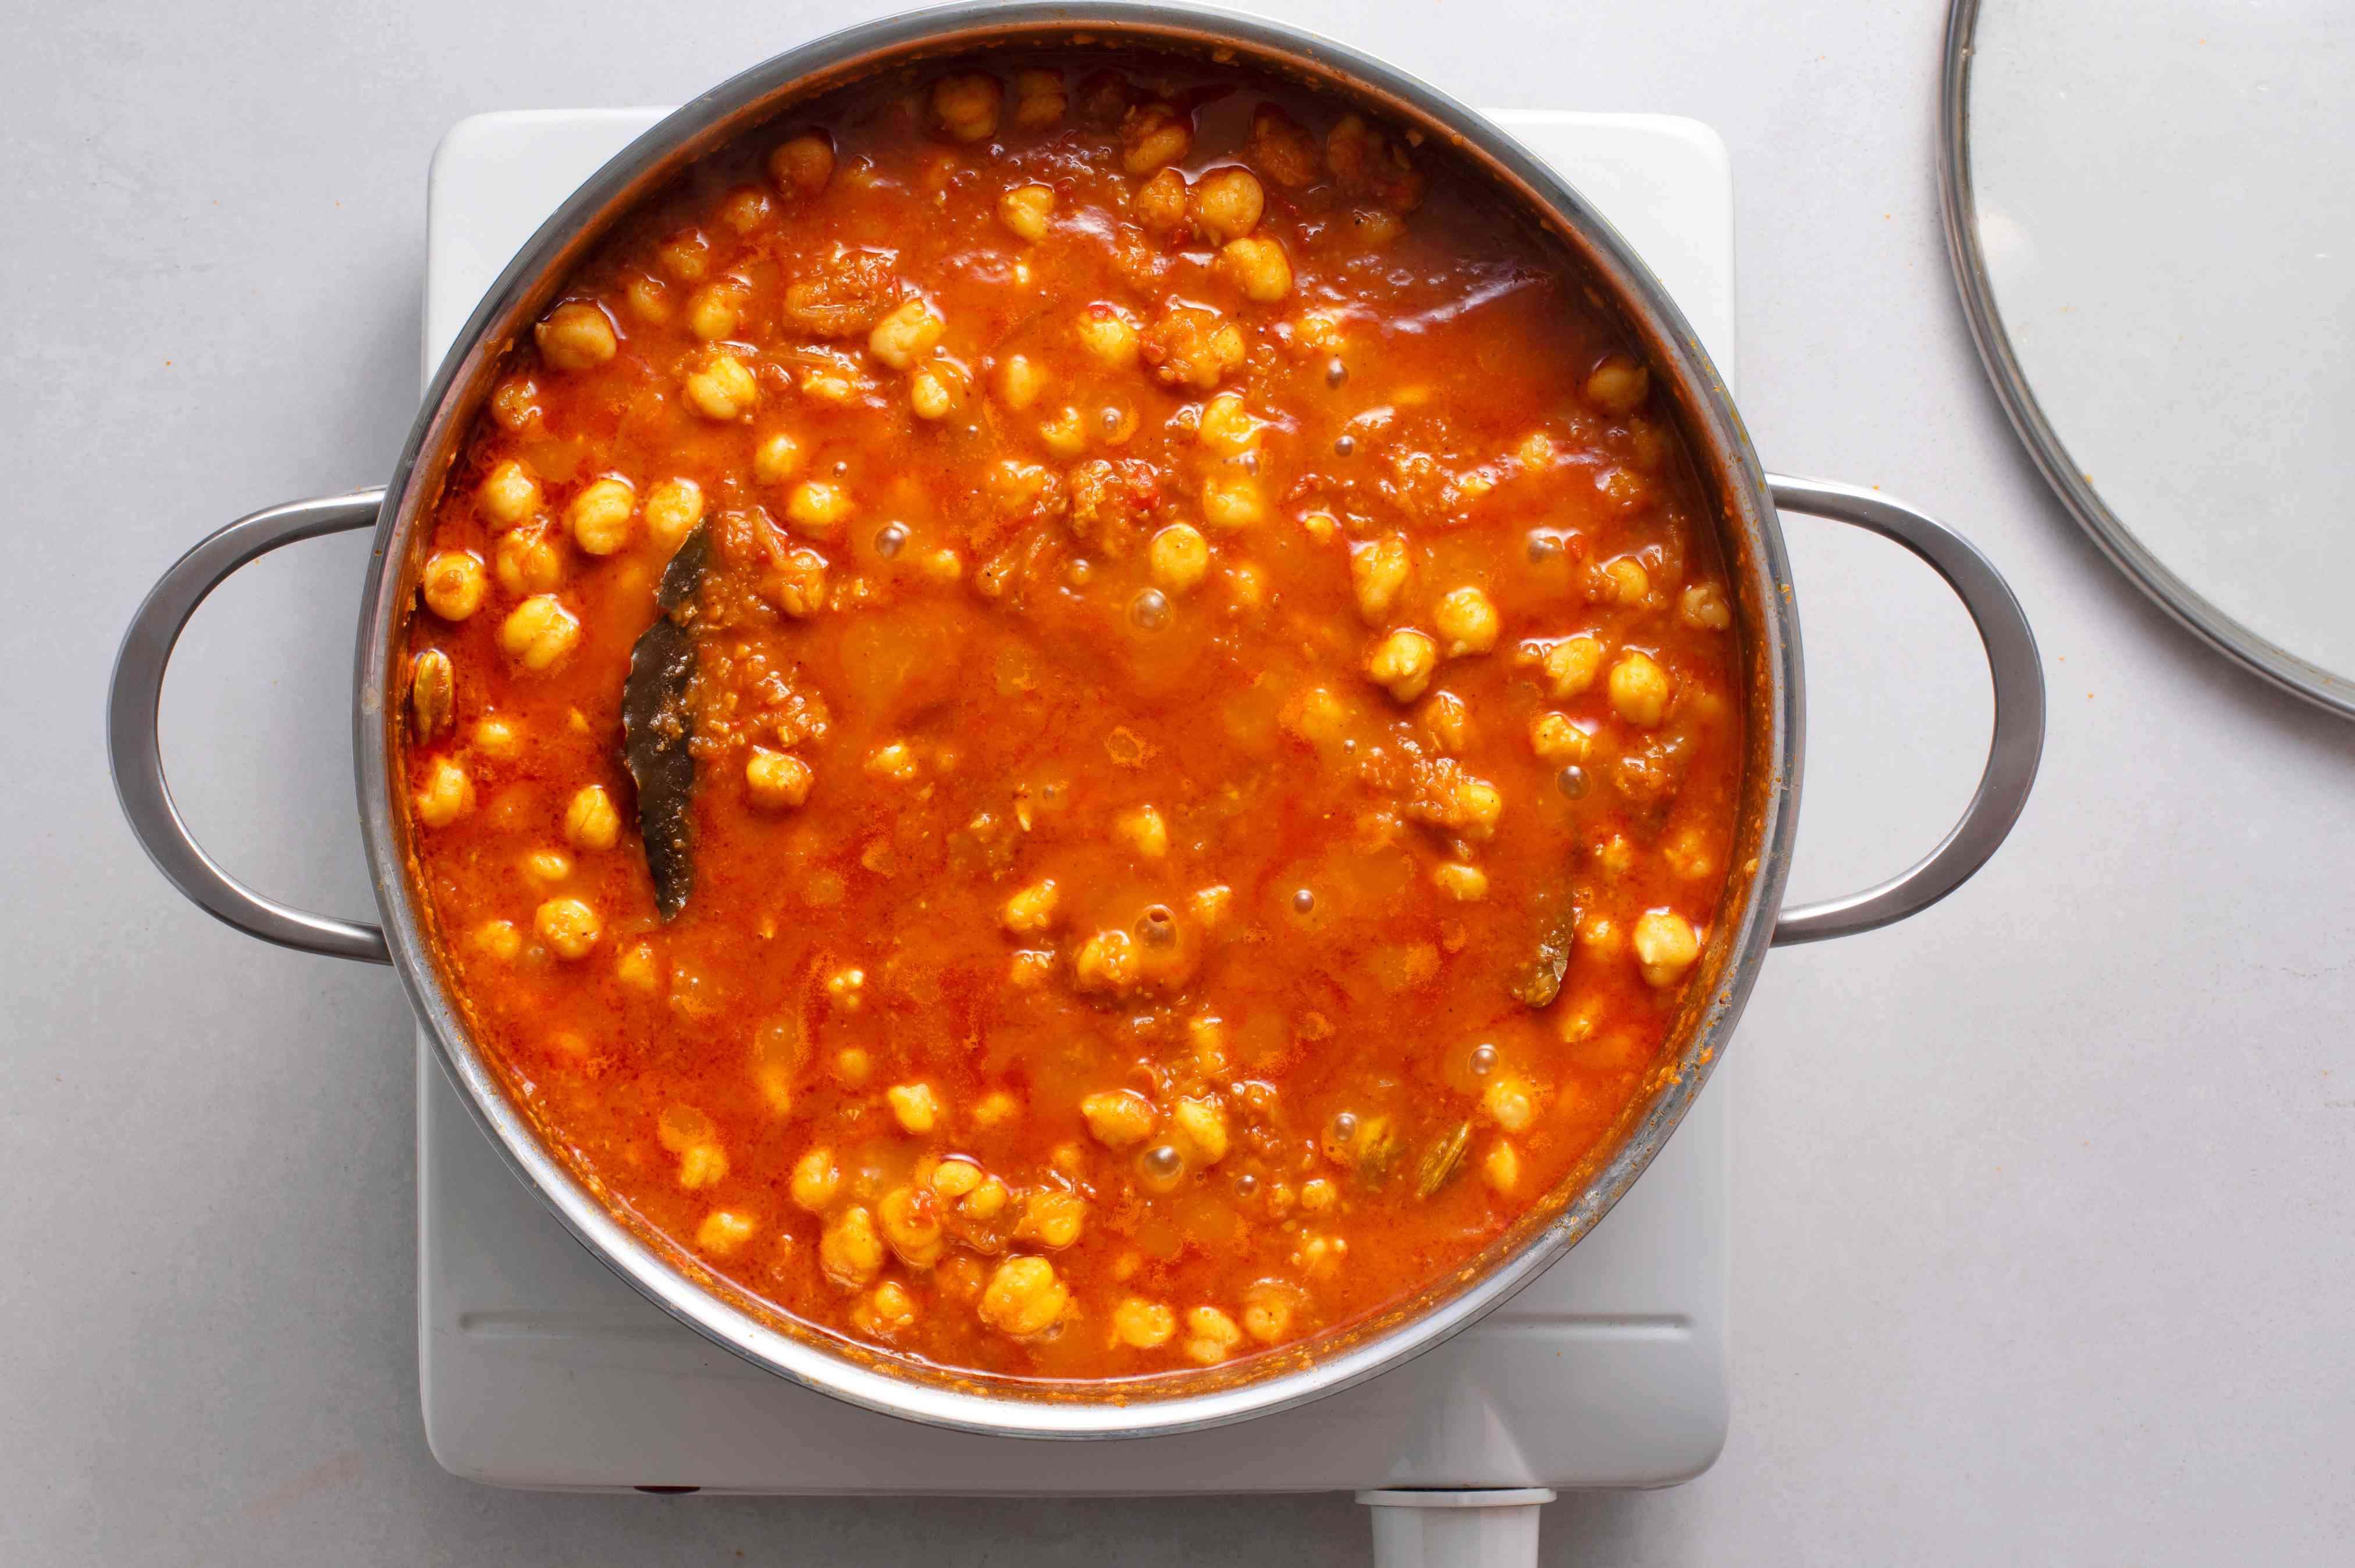 Simmer and cook chickpeas and masala